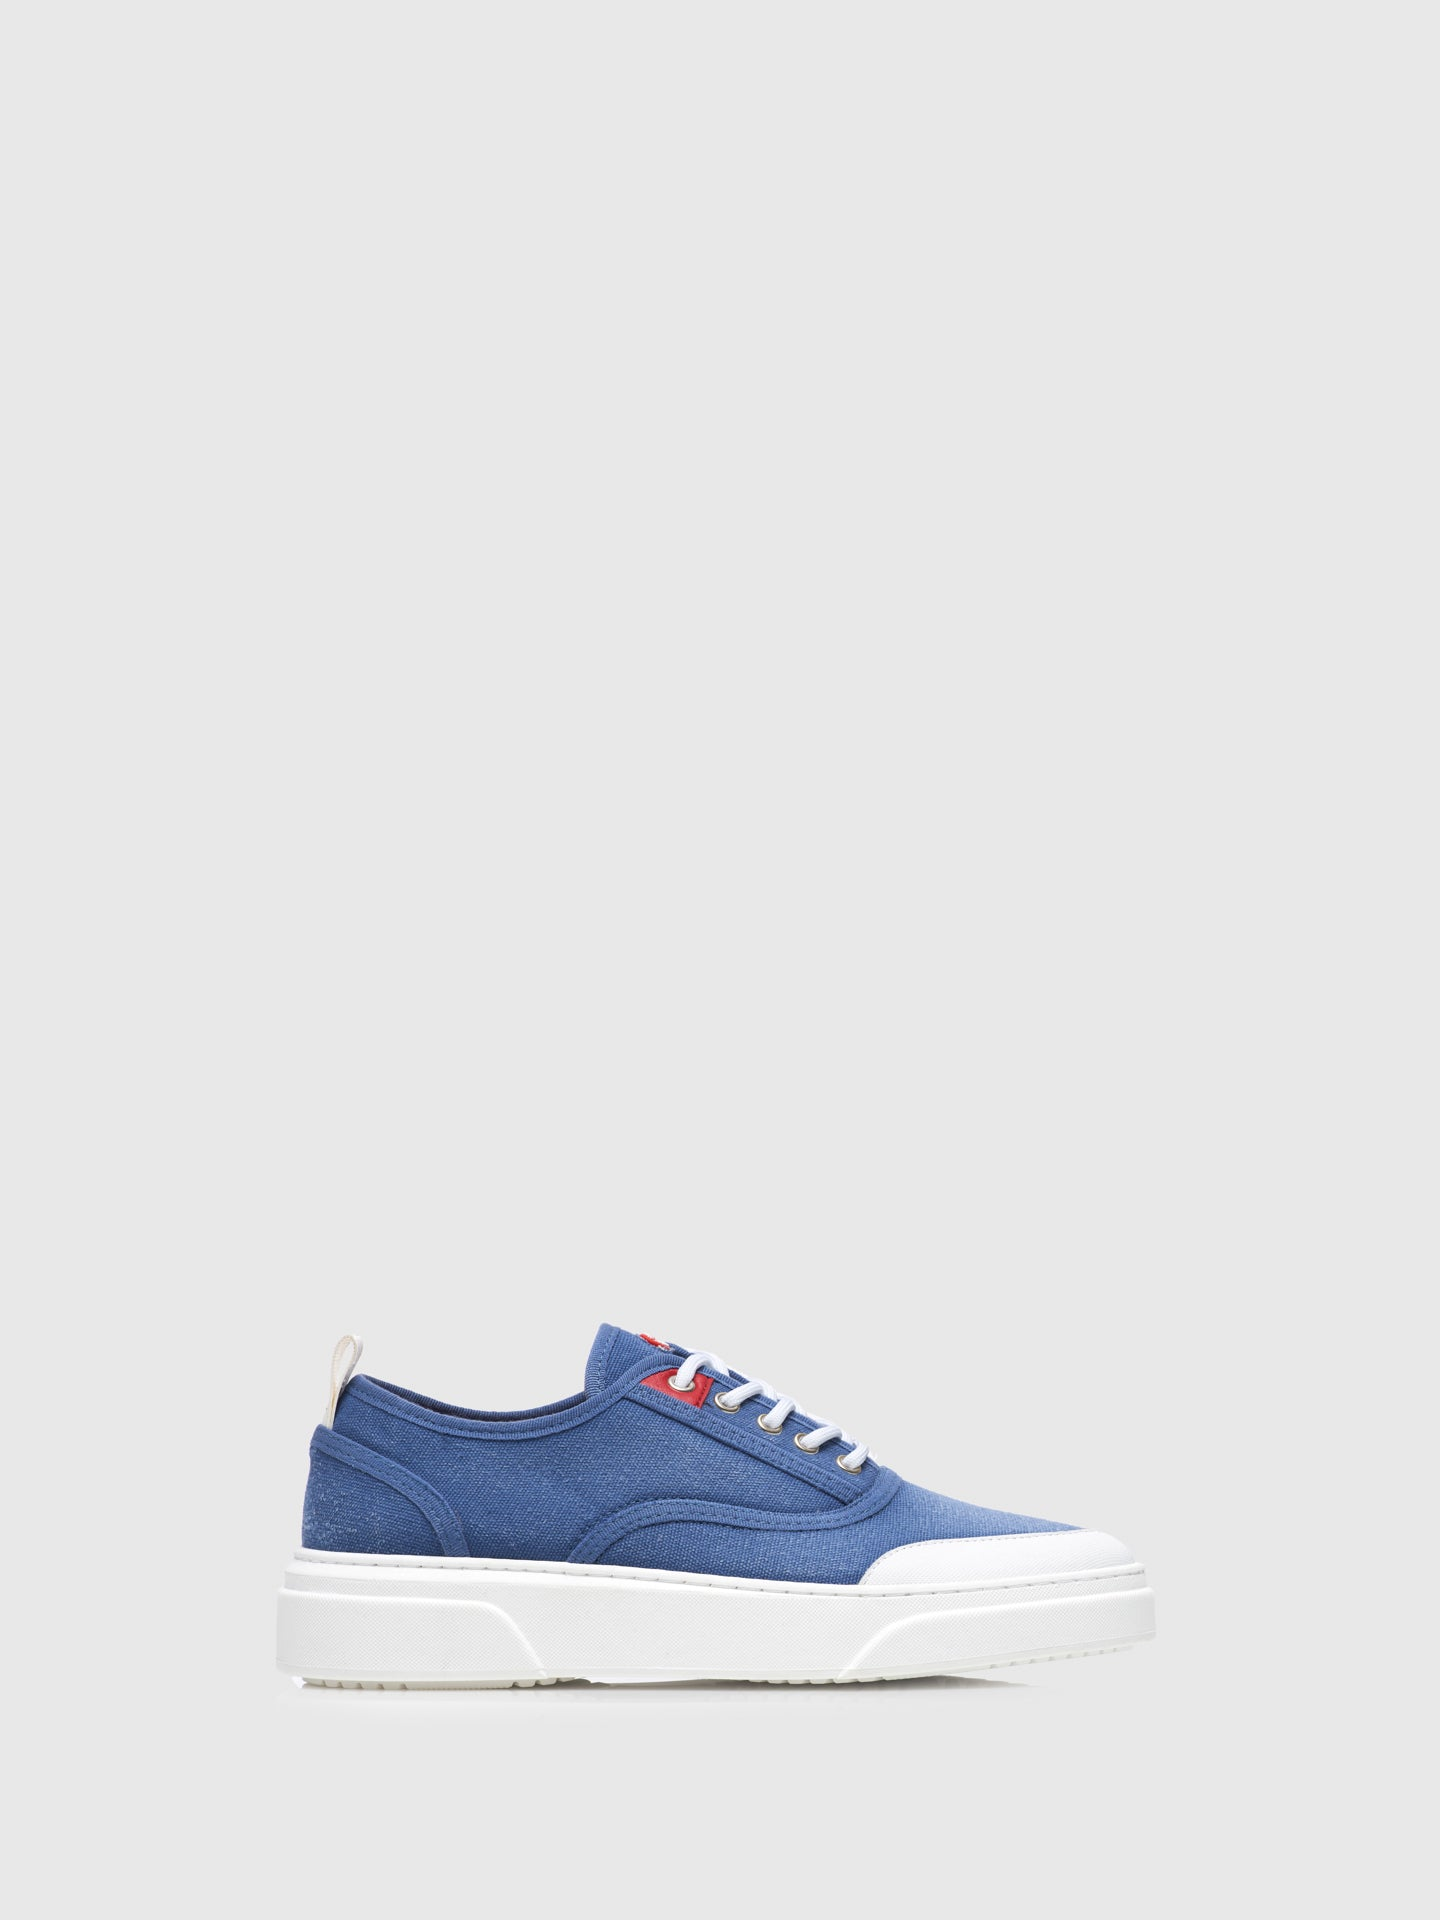 Nobrand Blue Lace-up Trainers